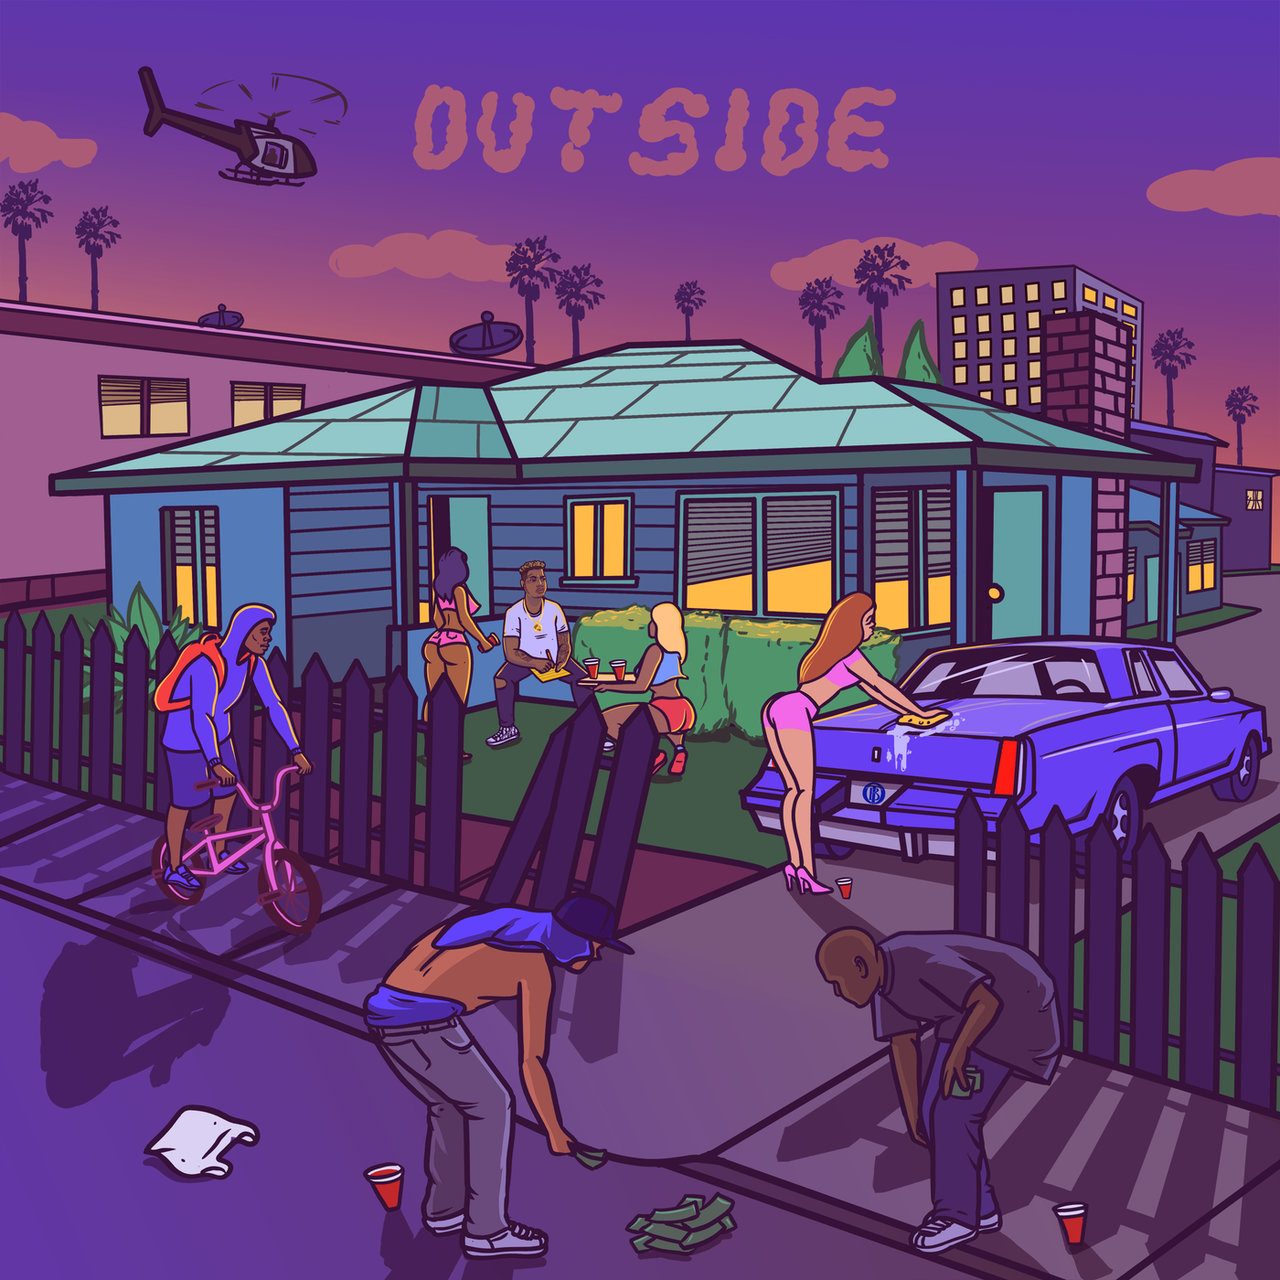 Bino Rideaux Releases His New Mixtape, 'Outside'